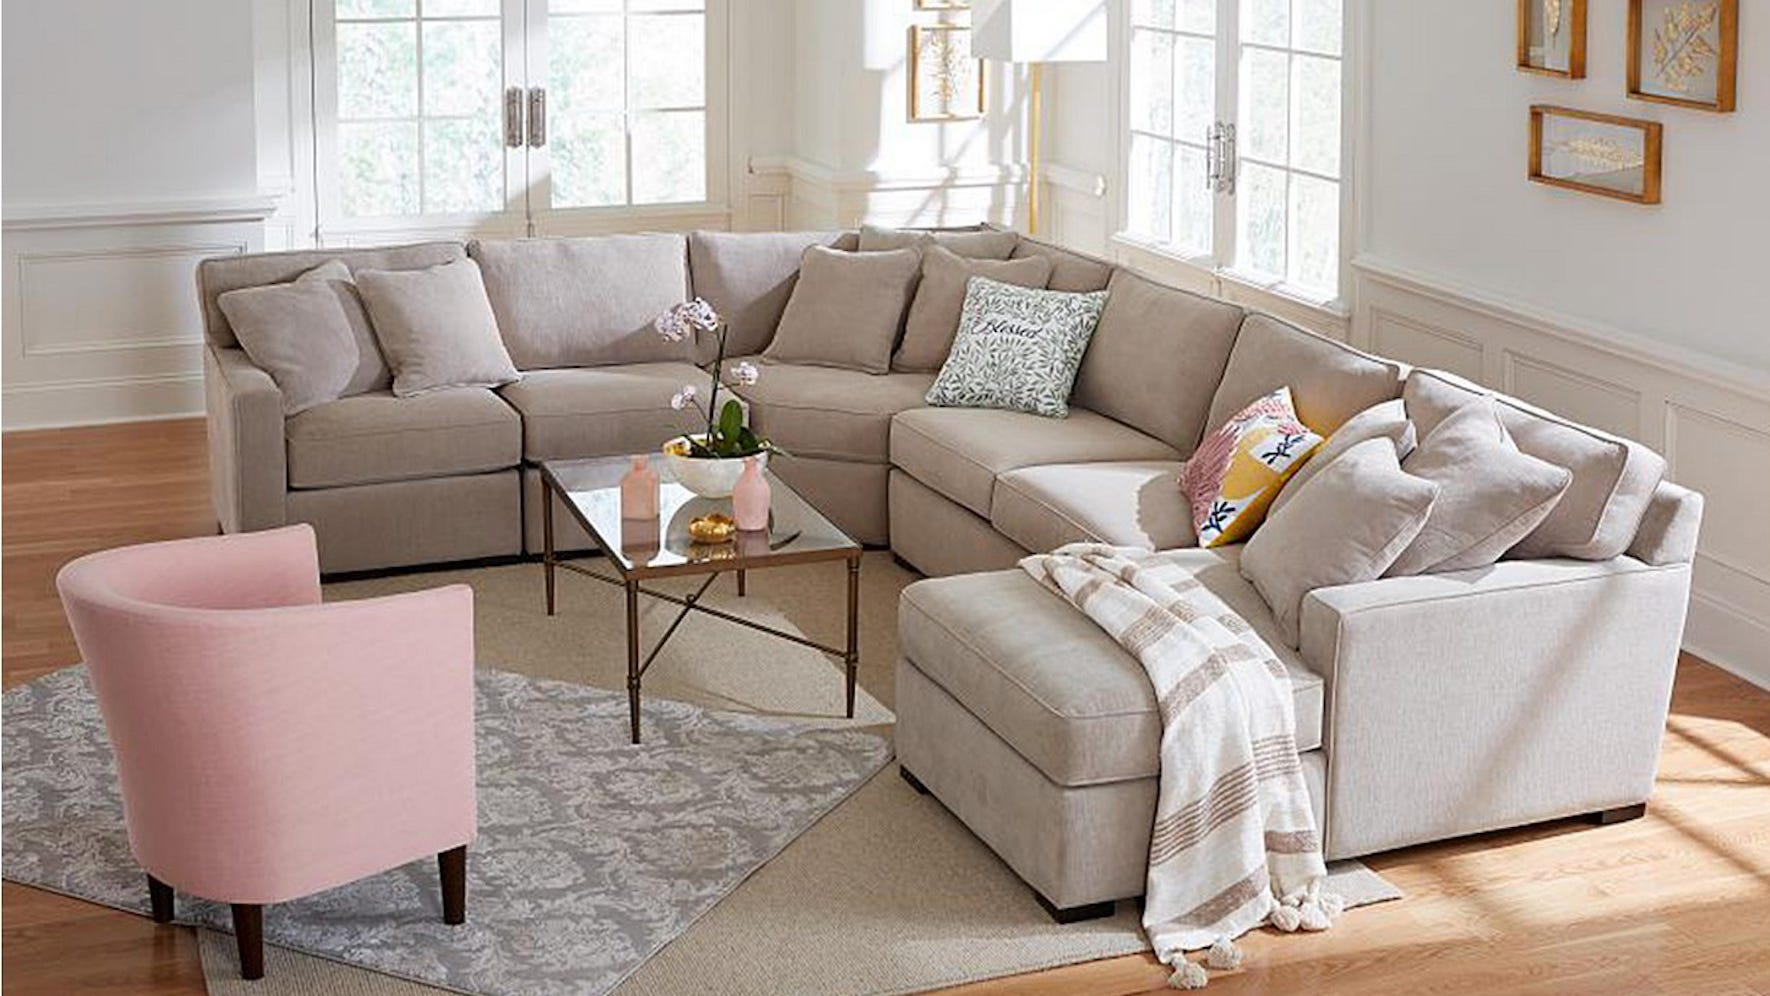 From sofas to media consoles, your living room revamp is just a few clicks away.